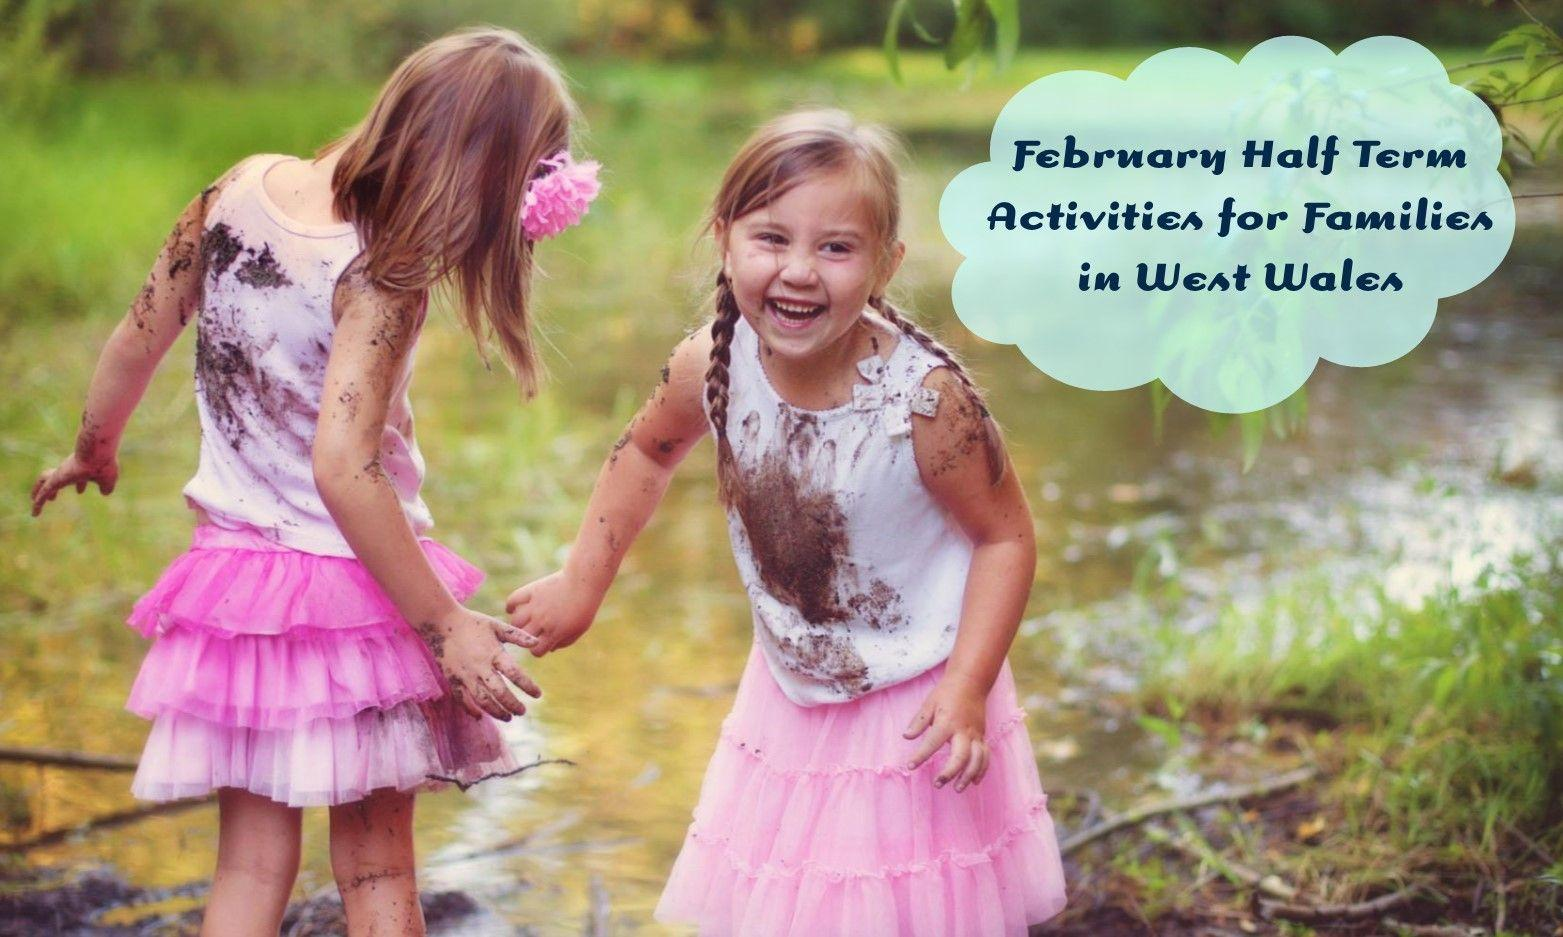 Family February Half Term Events in West Wales 2019